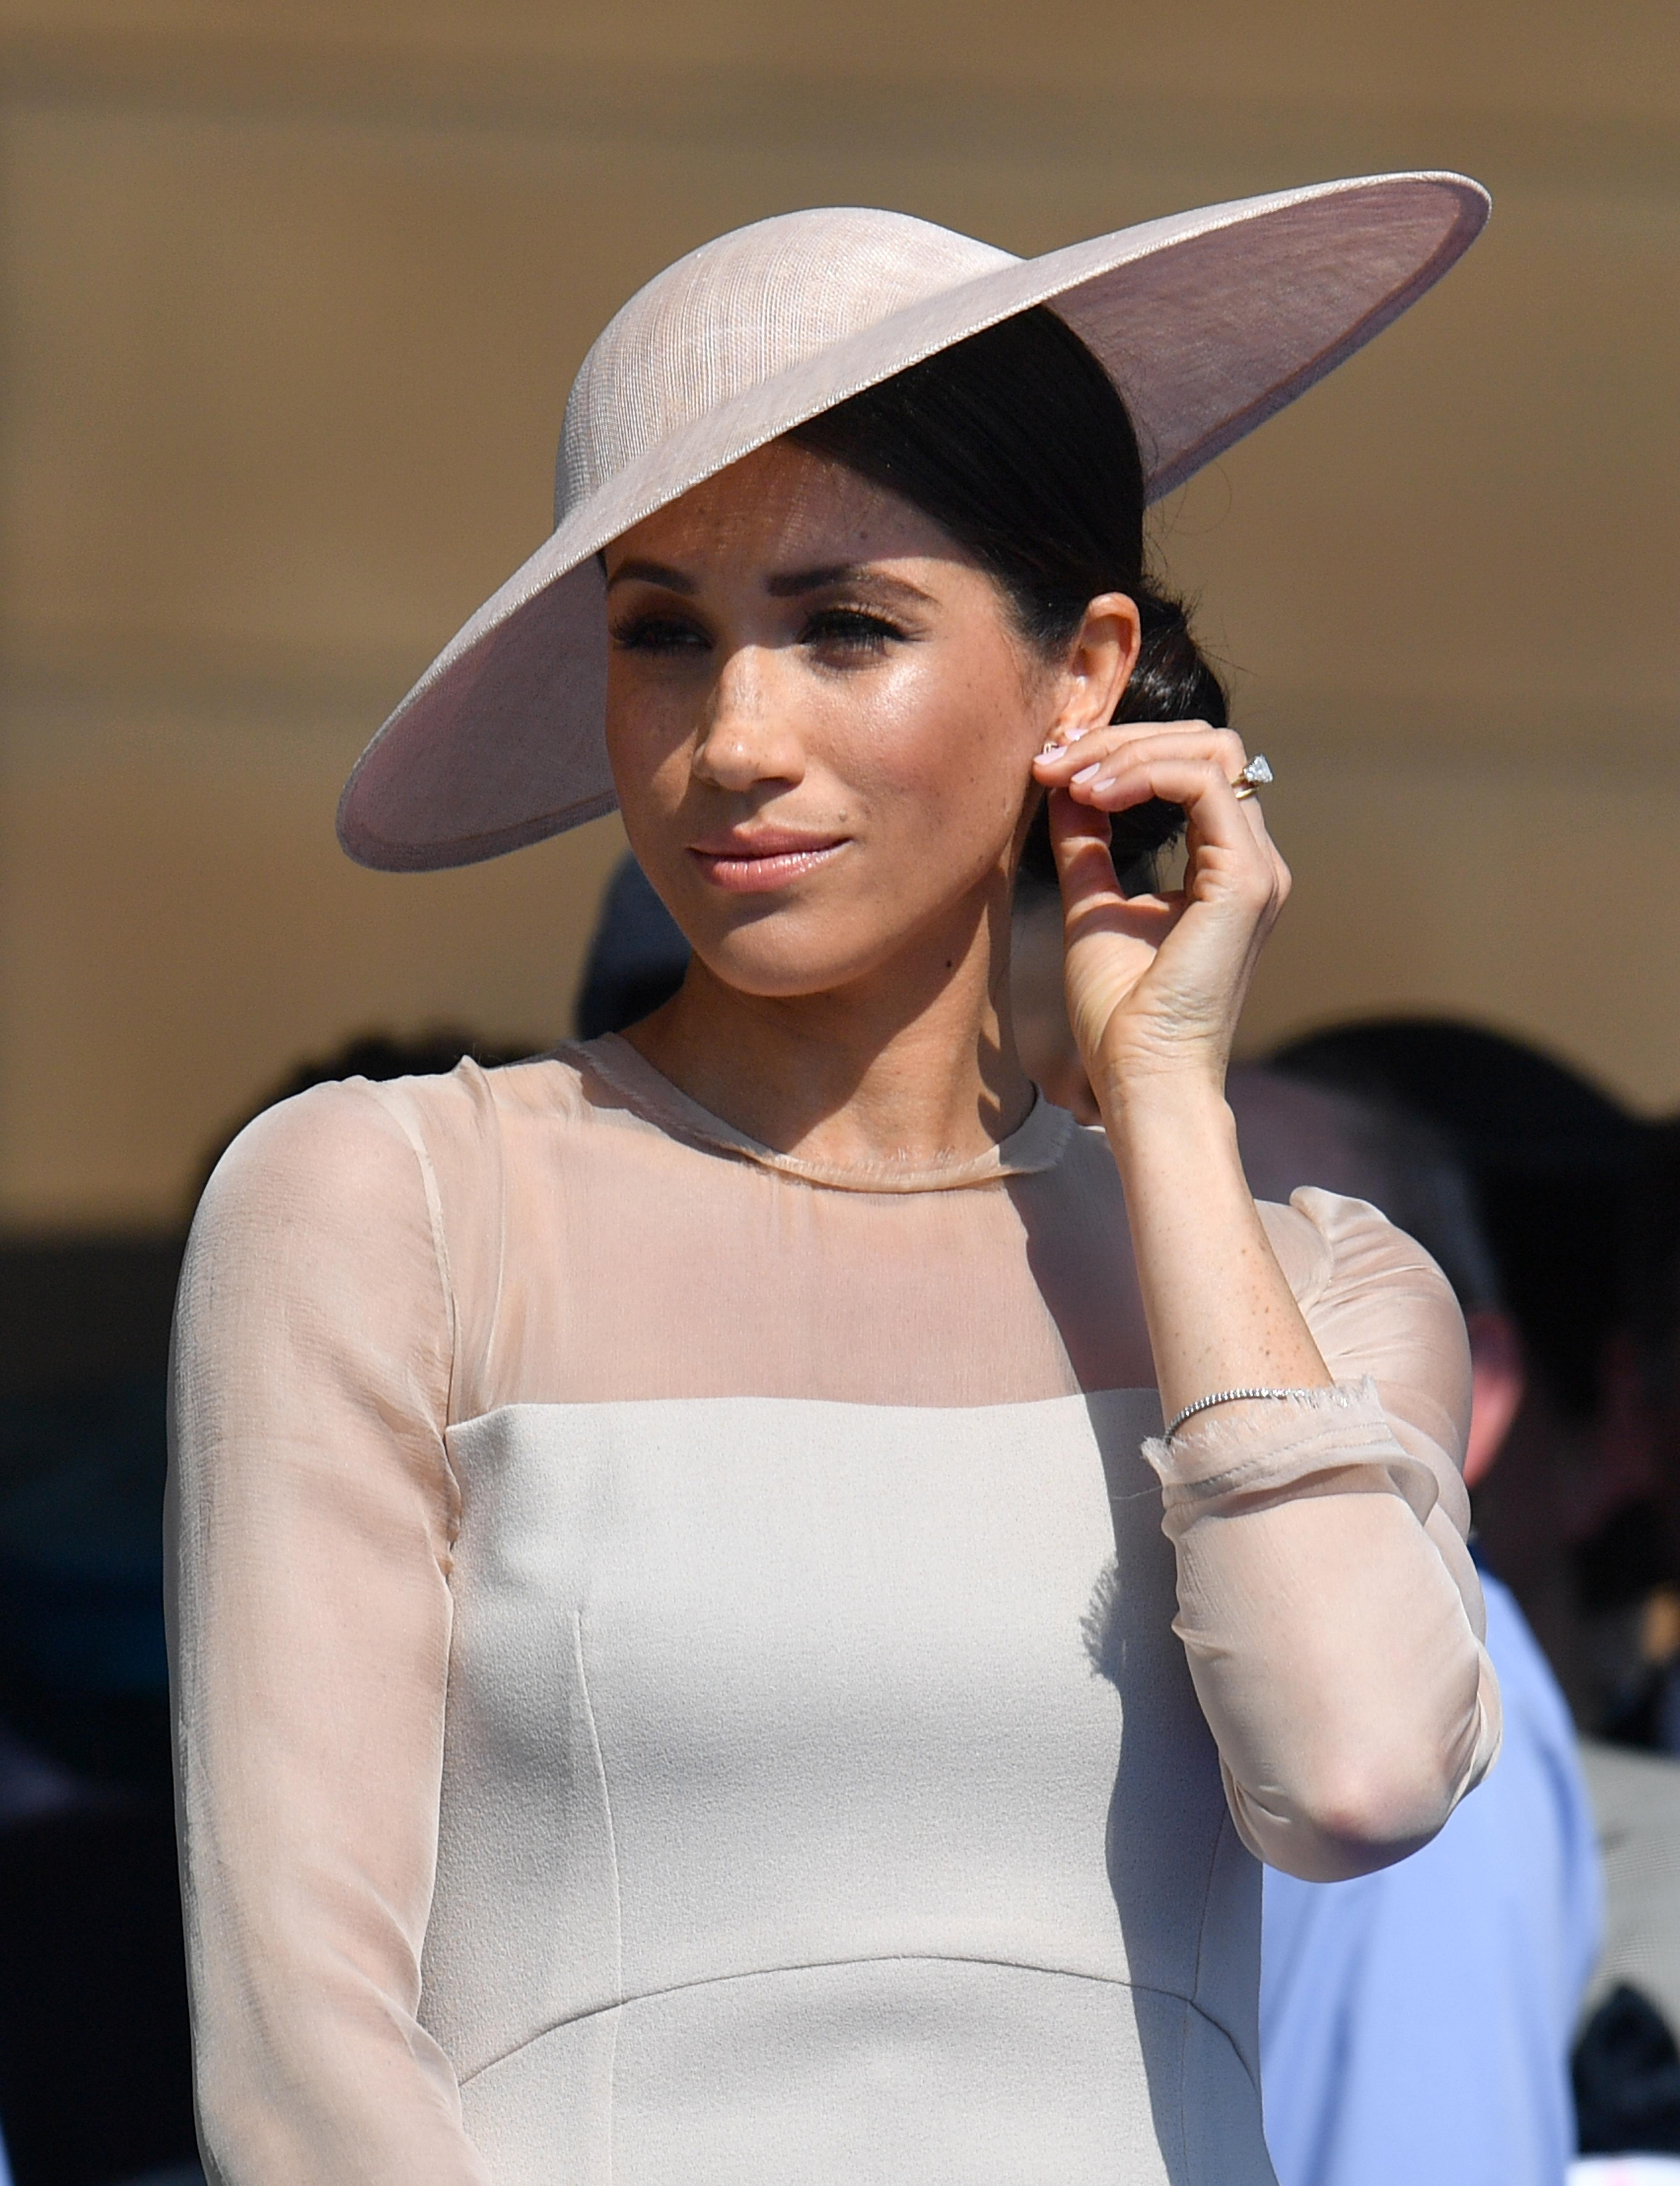 The Duchess of Sussex at a garden party at Buckingham Palace in London which she is attending as her first royal engagement after being married. The garden party was to mark the forthcoming 70th birthday of The Prince of Wales.